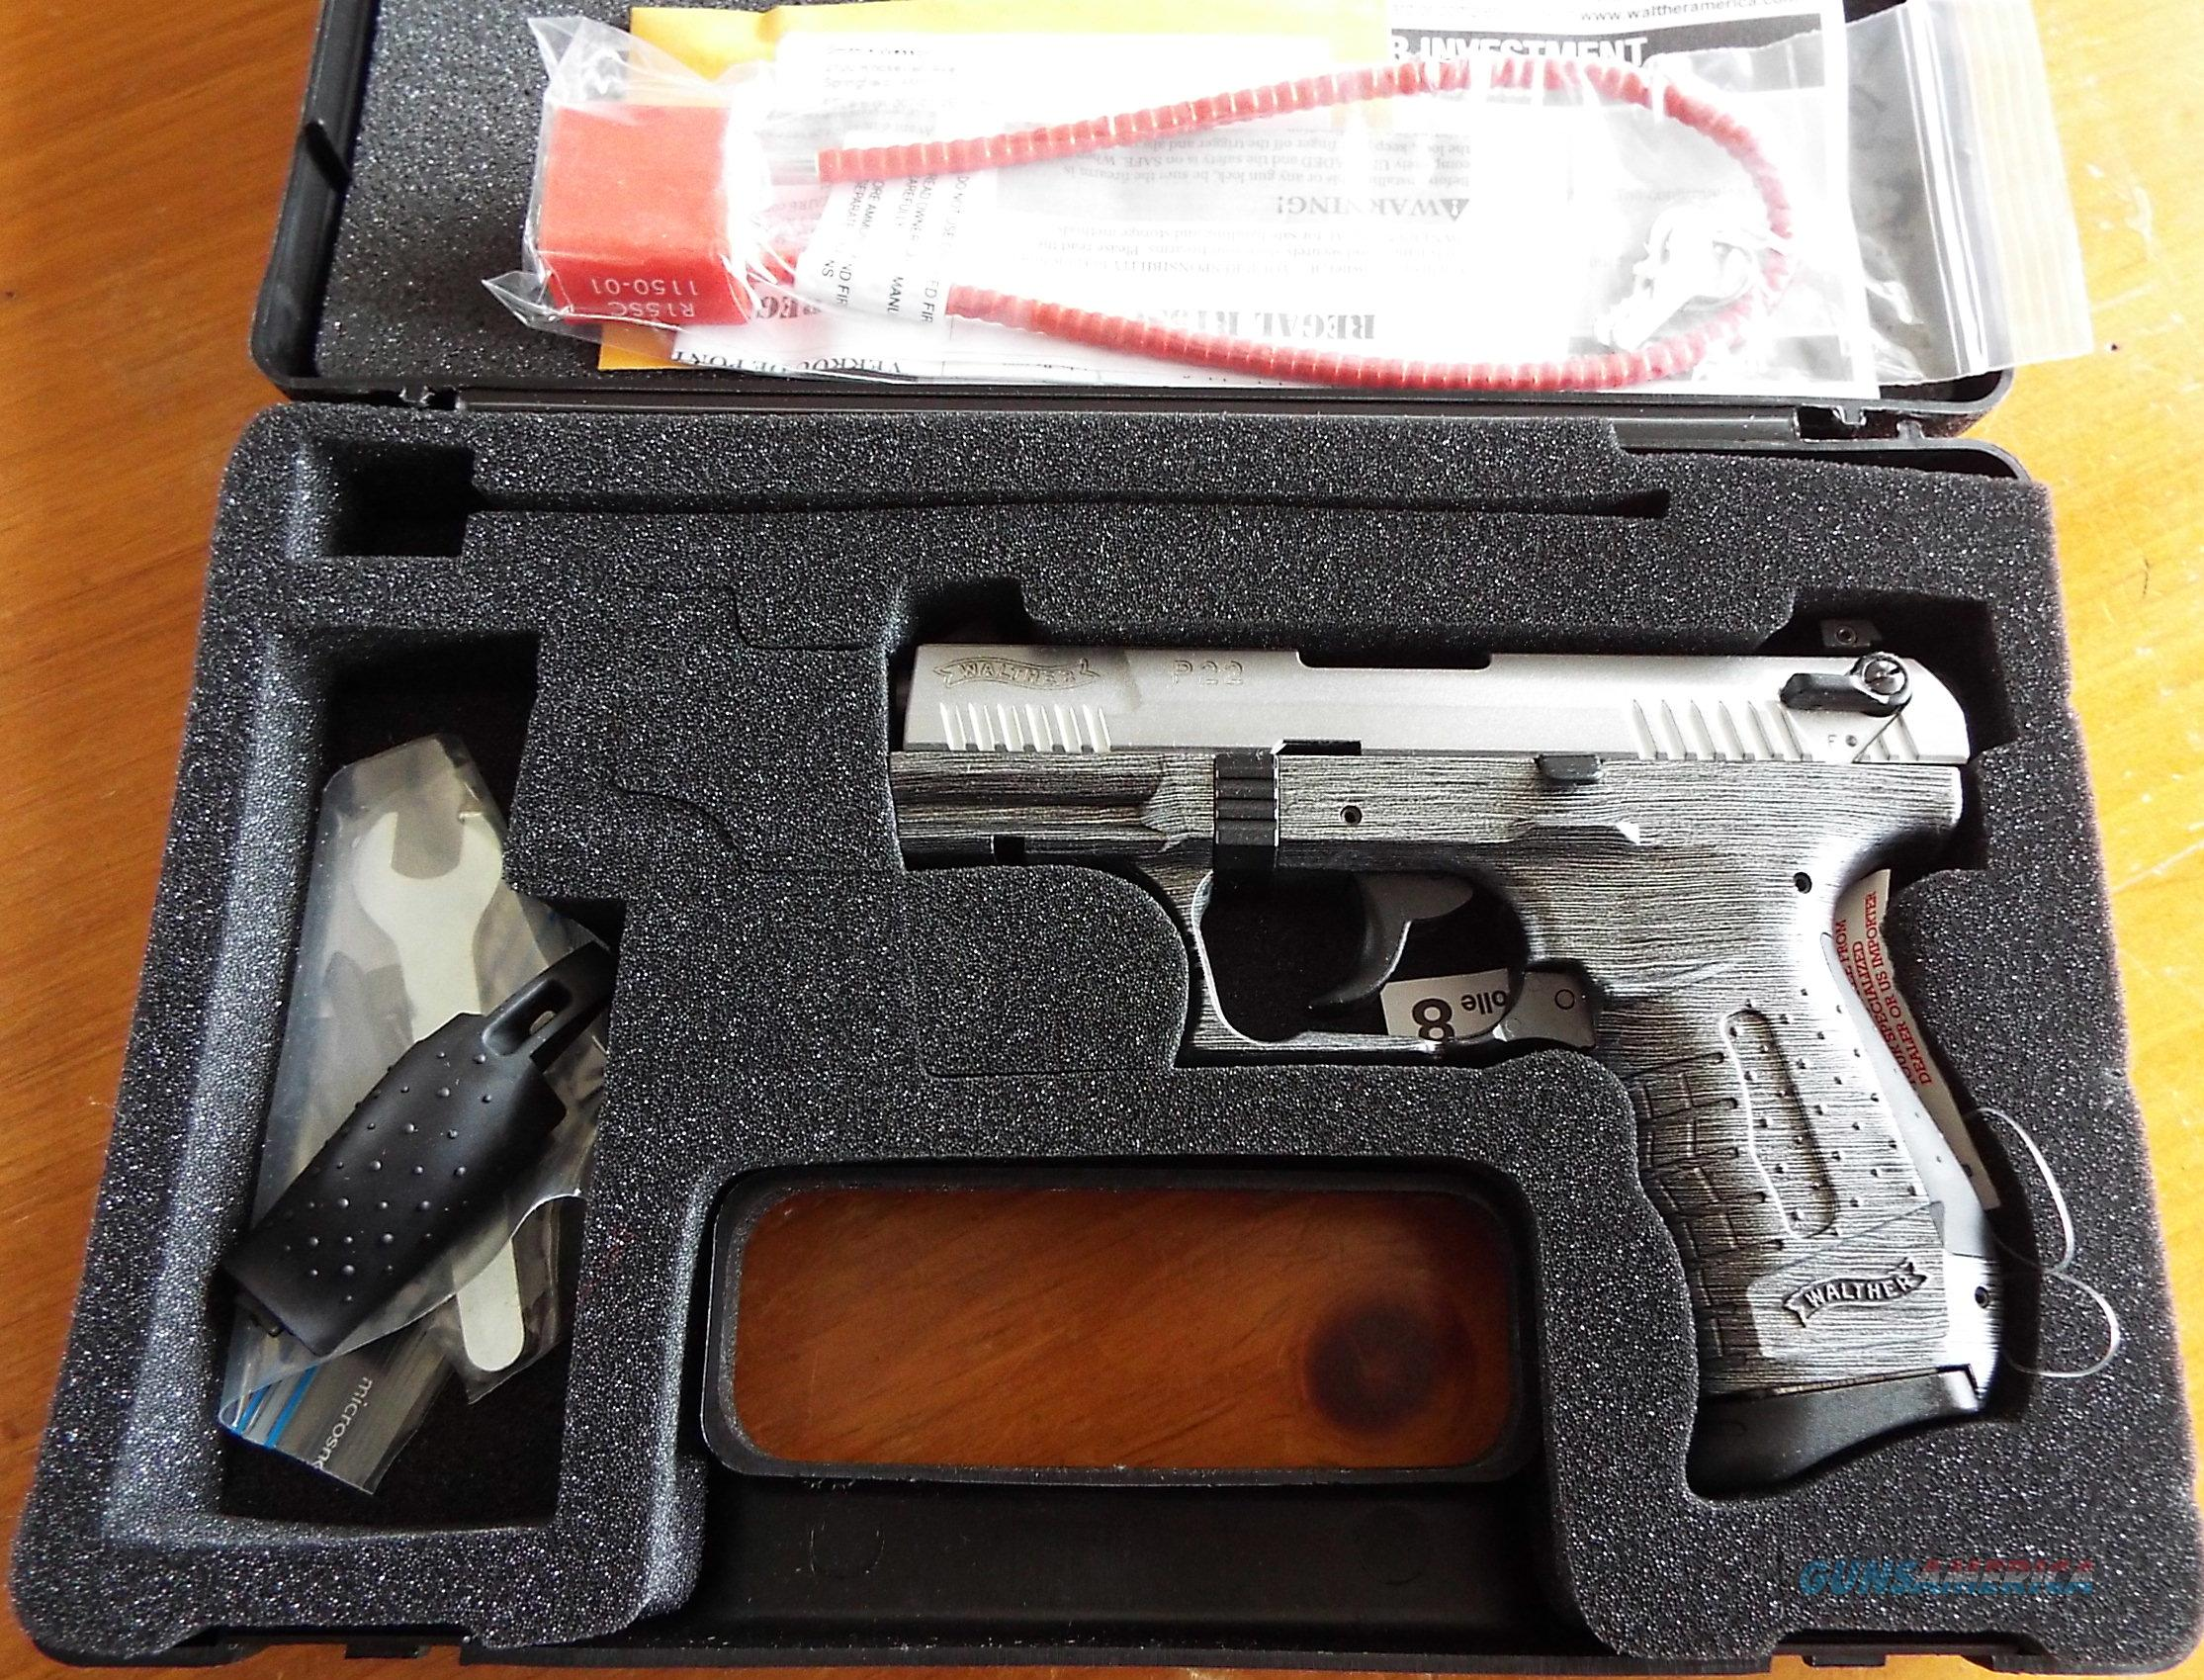 Ltd. Edition Walther P22 Brushed CHROME    22 LR   New!    LAYAWAY OPTION    WAN22012  Guns > Pistols > Walther Pistols > Post WWII > P22